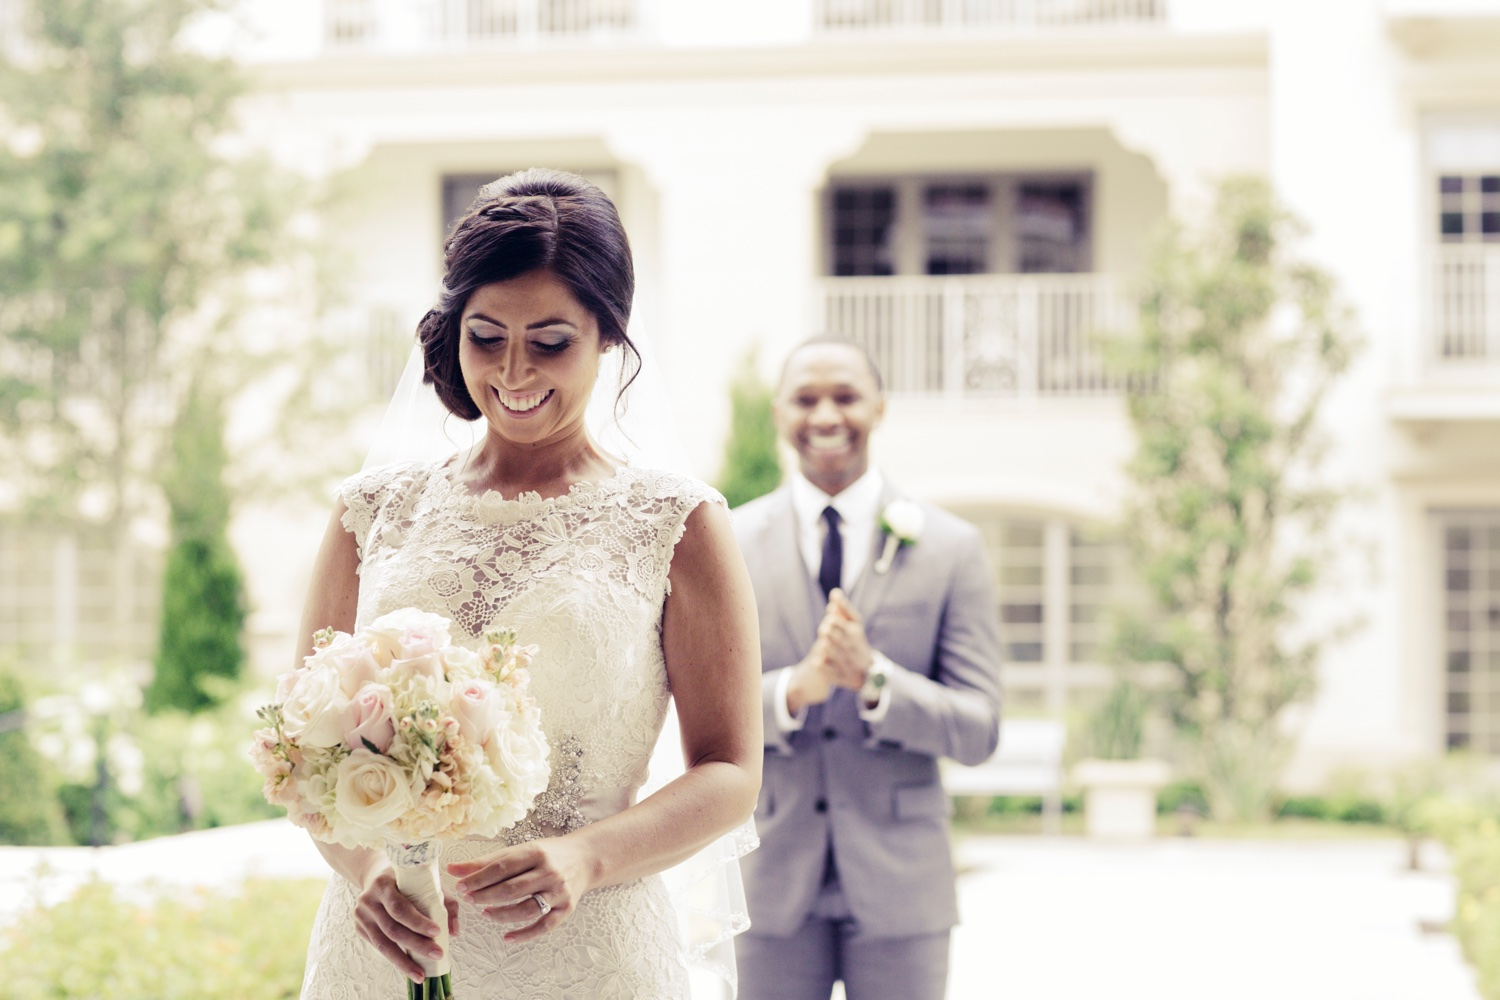 002-2014-2015_top30_by_orlando_wedding_photographer_brianadamsphoto.com.jpg